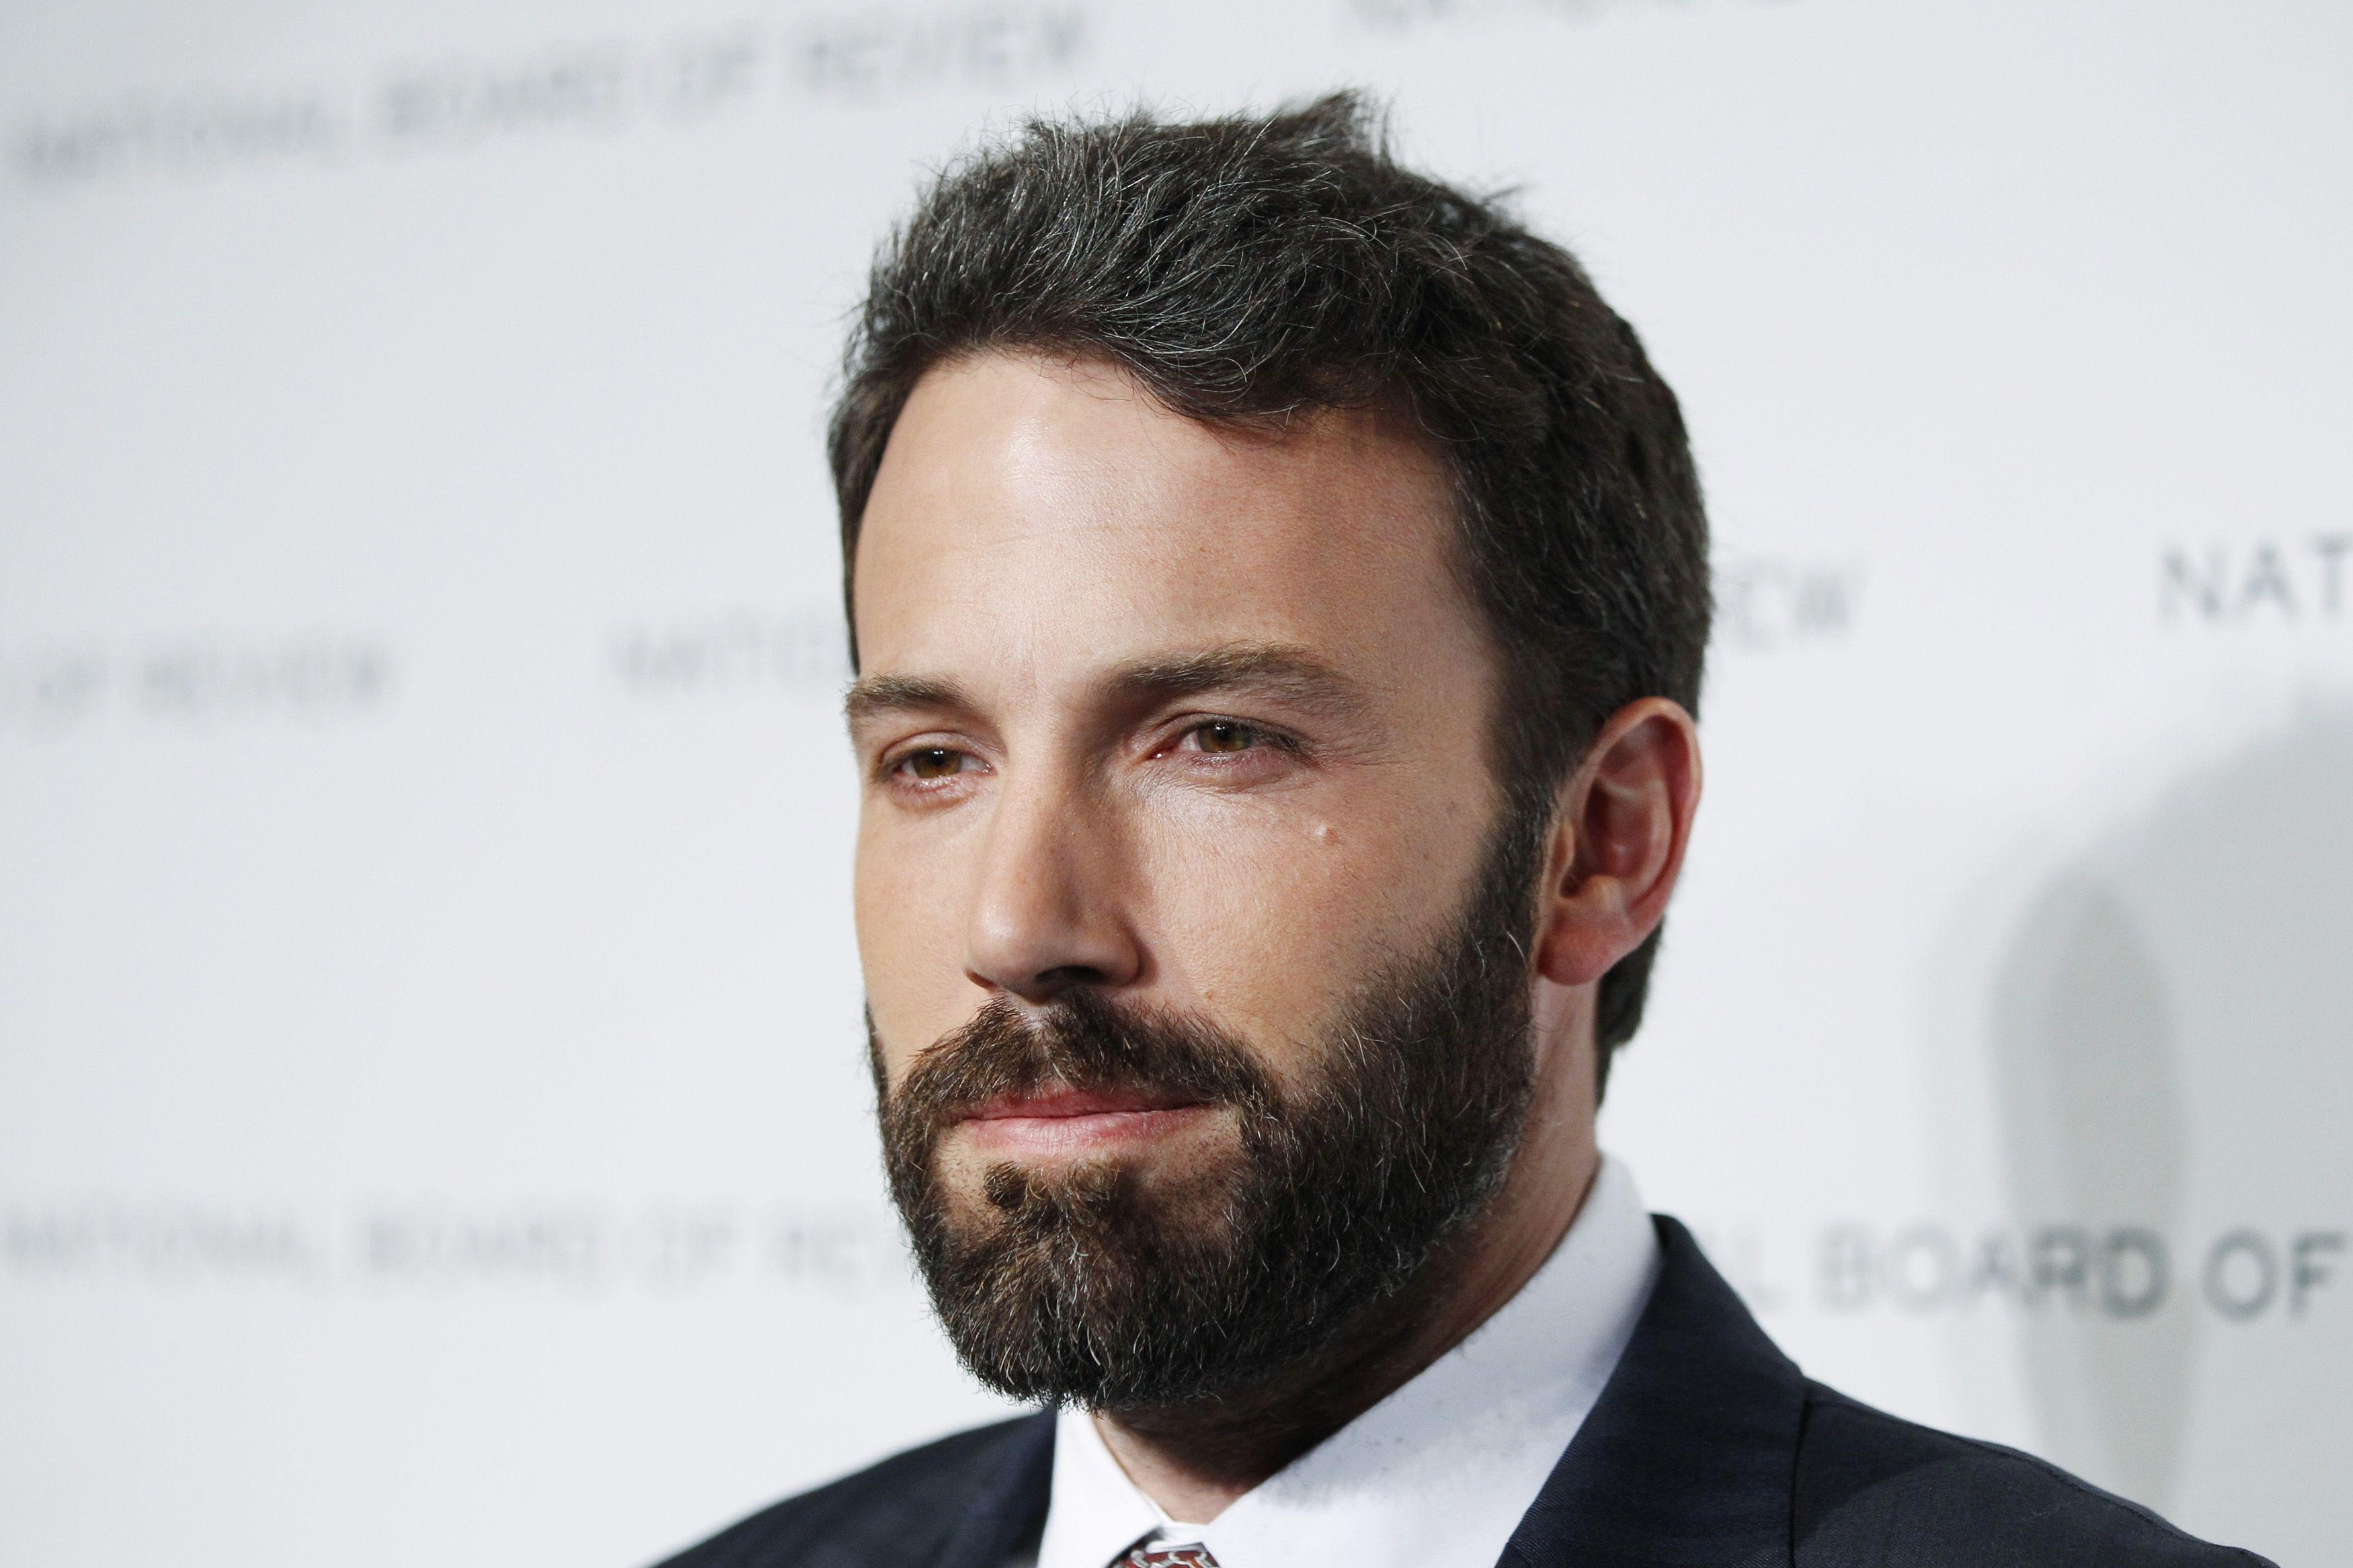 Ben Affleck Wallpapers High Resolution and Quality Download